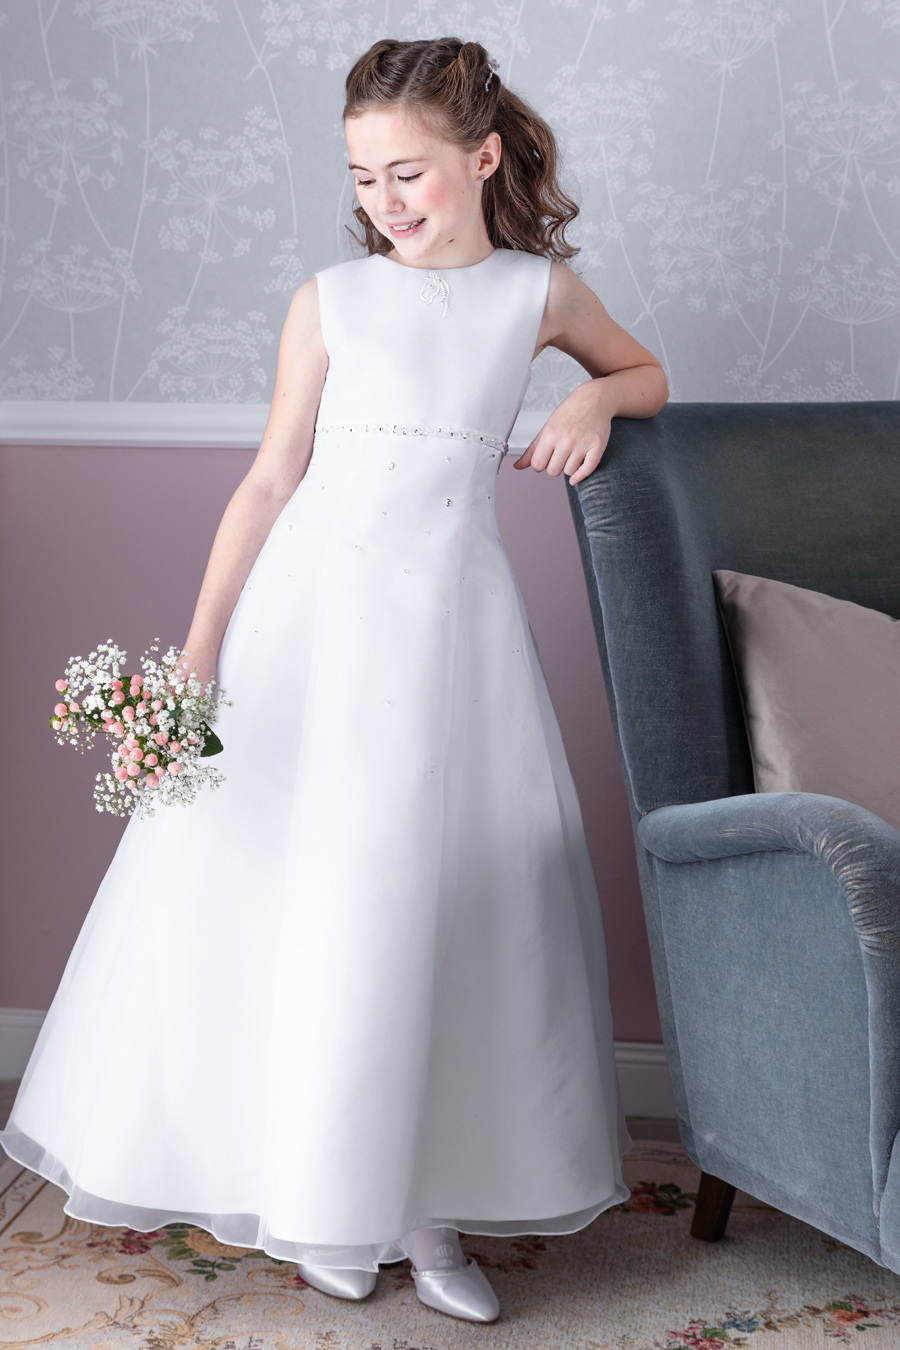 EM 2019 DRESS DORY Emmerling